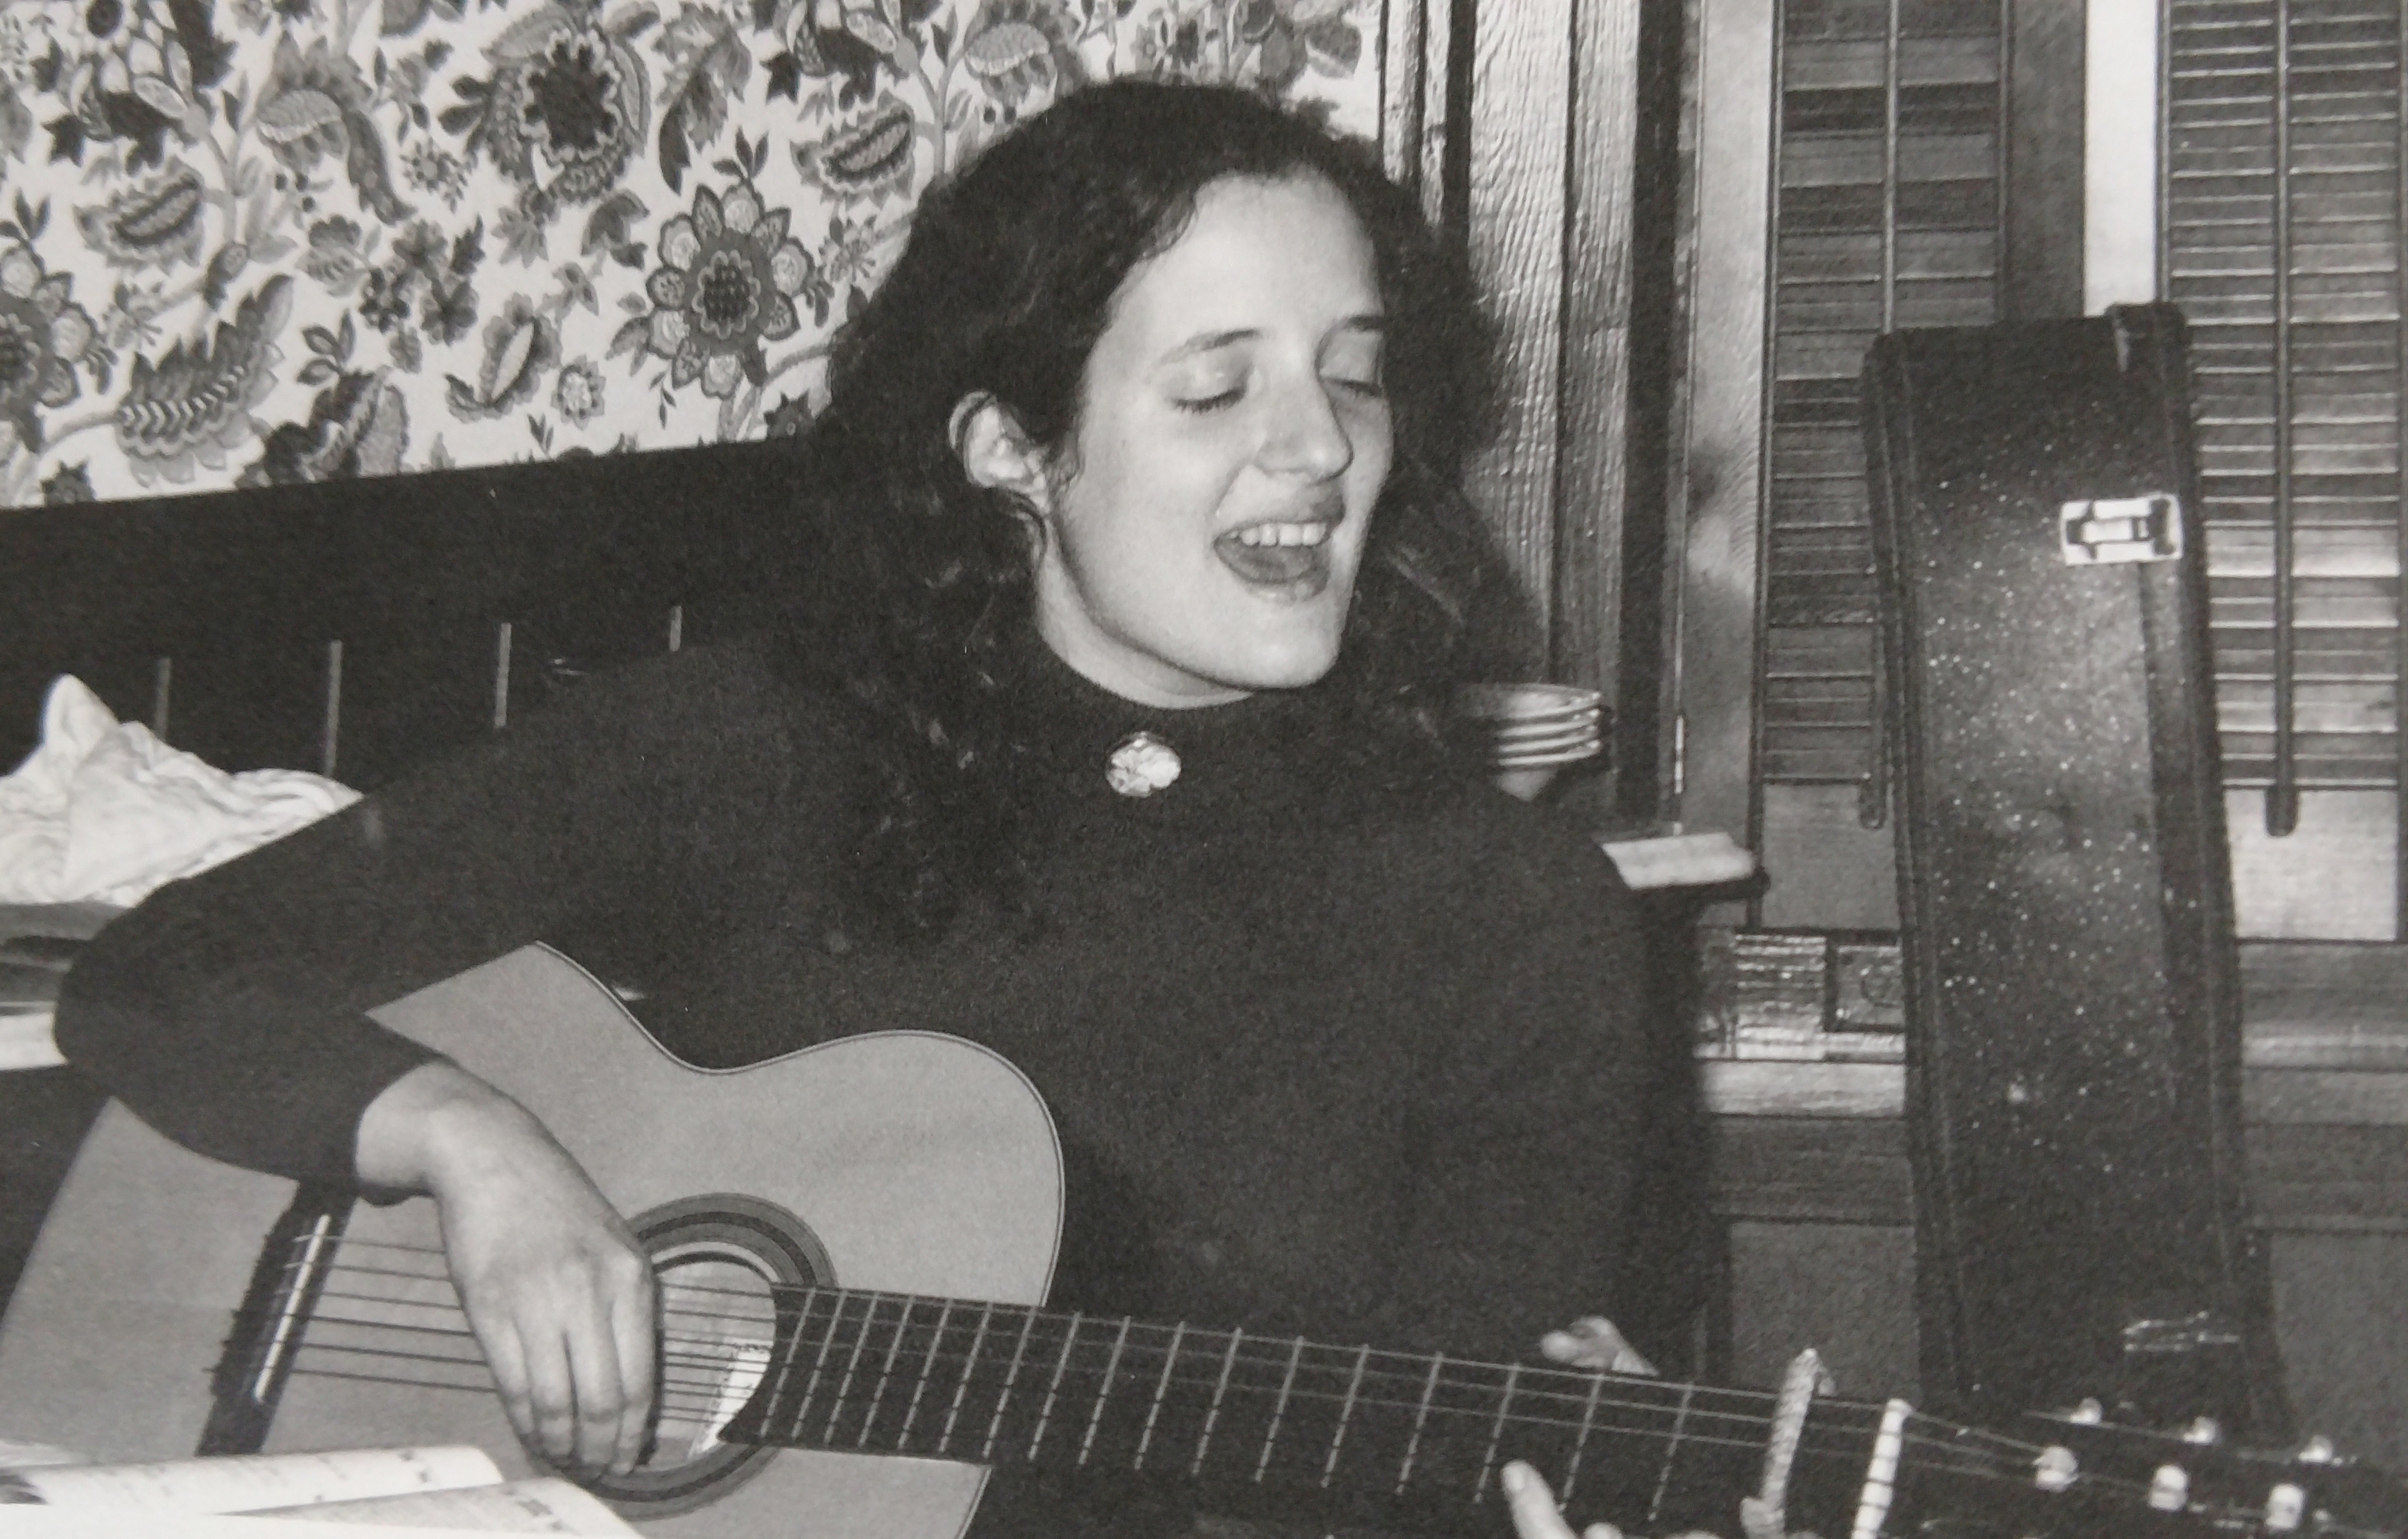 A vintage picture of a woman singing and strumming an acoustic guitar